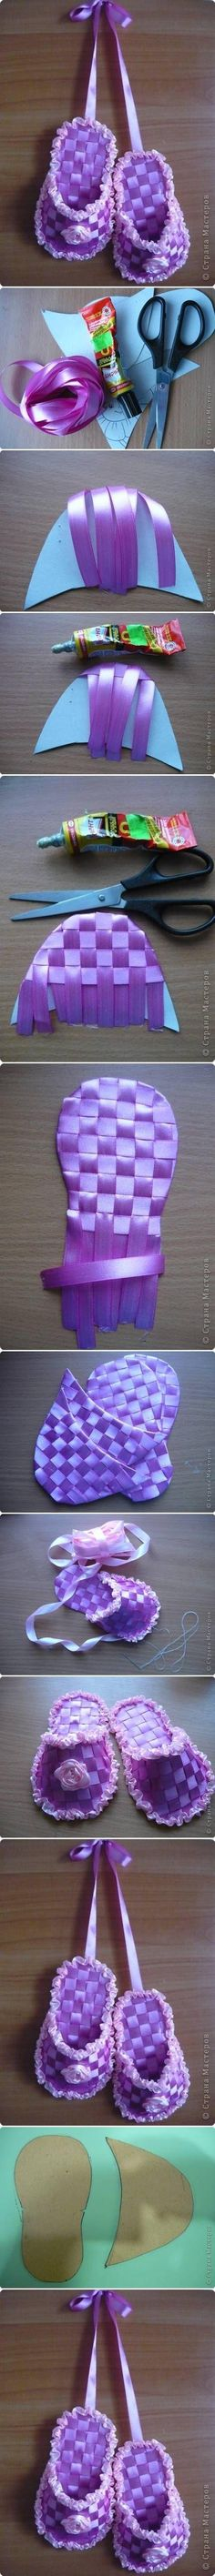 DIY Ribbon Crafts : DIY Ribbon Slippers cute for baby shower